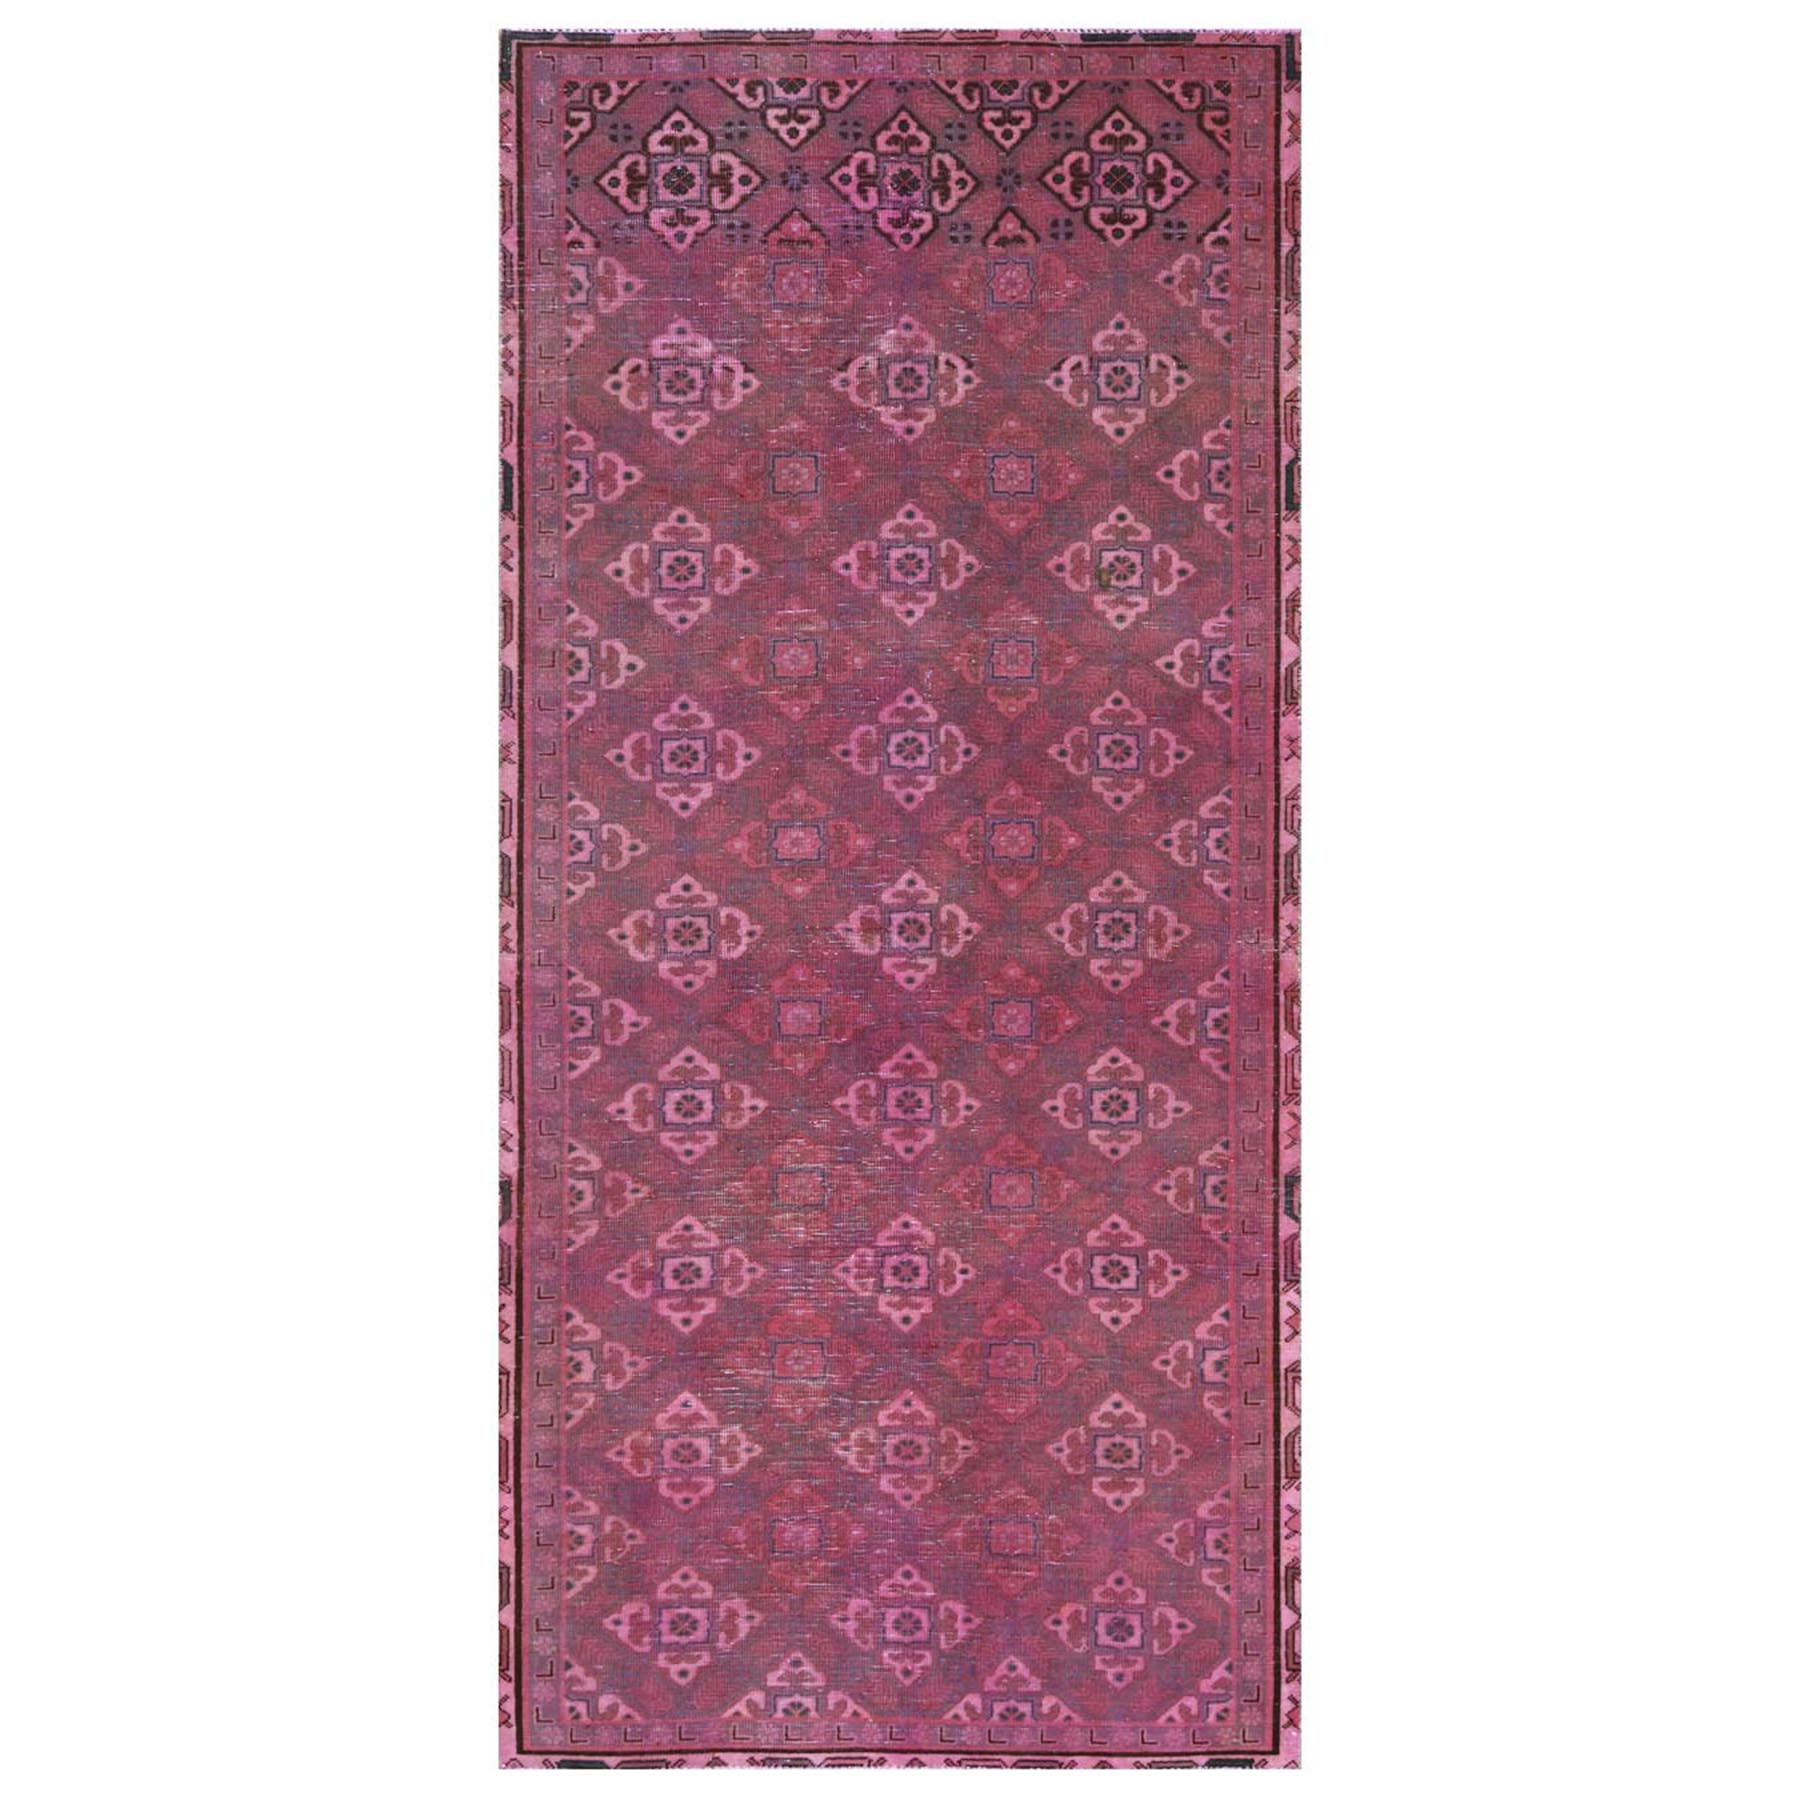 "4'1""x9' Bohemian Vintage Worn Down Pink Persian Shiraz Clean Hand Woven Organic Wool Oriental Gallery Size Runner Rug"